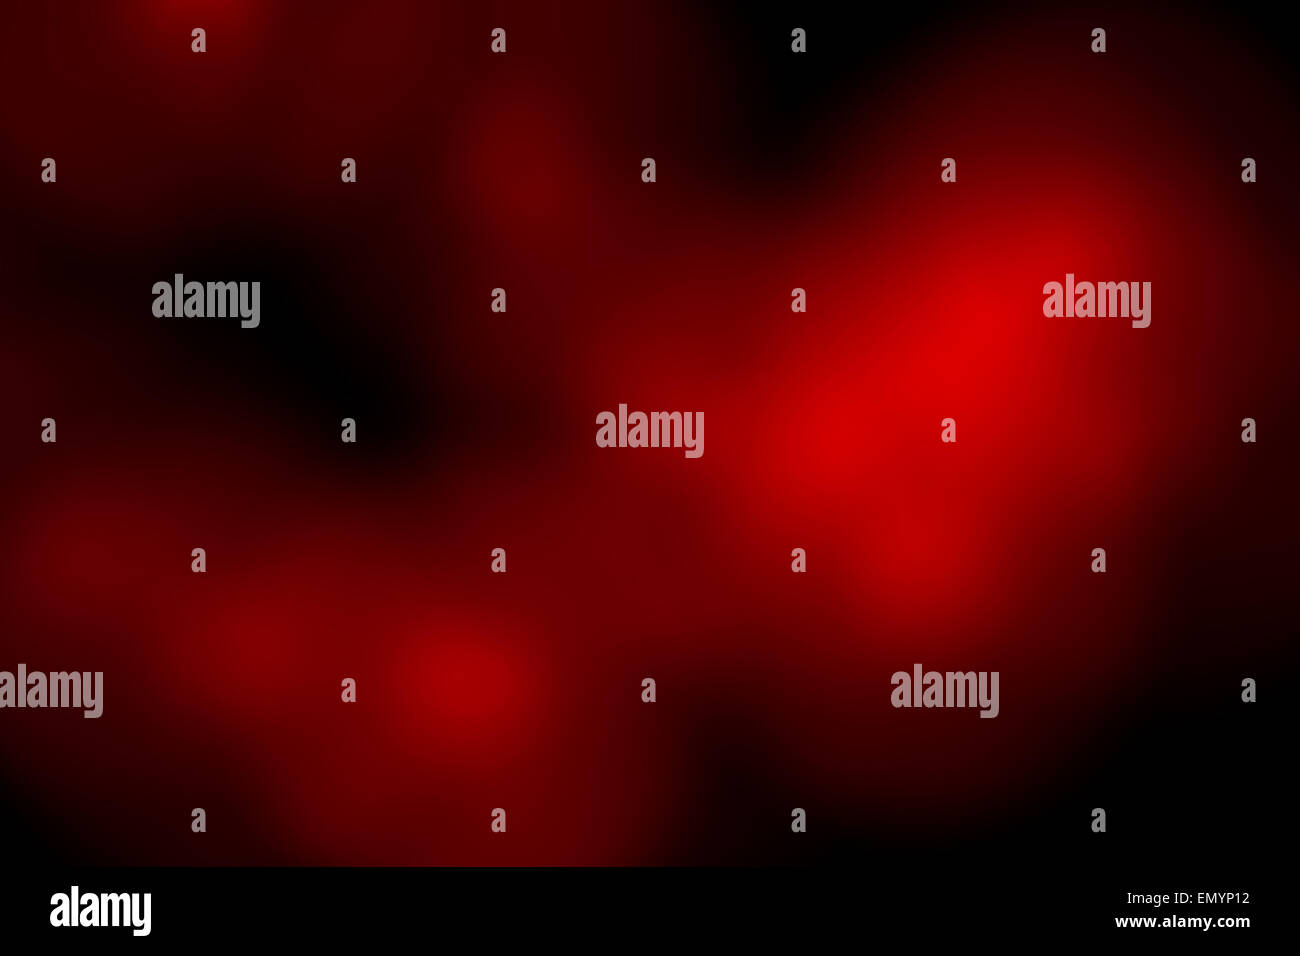 red and black blur wallpaper